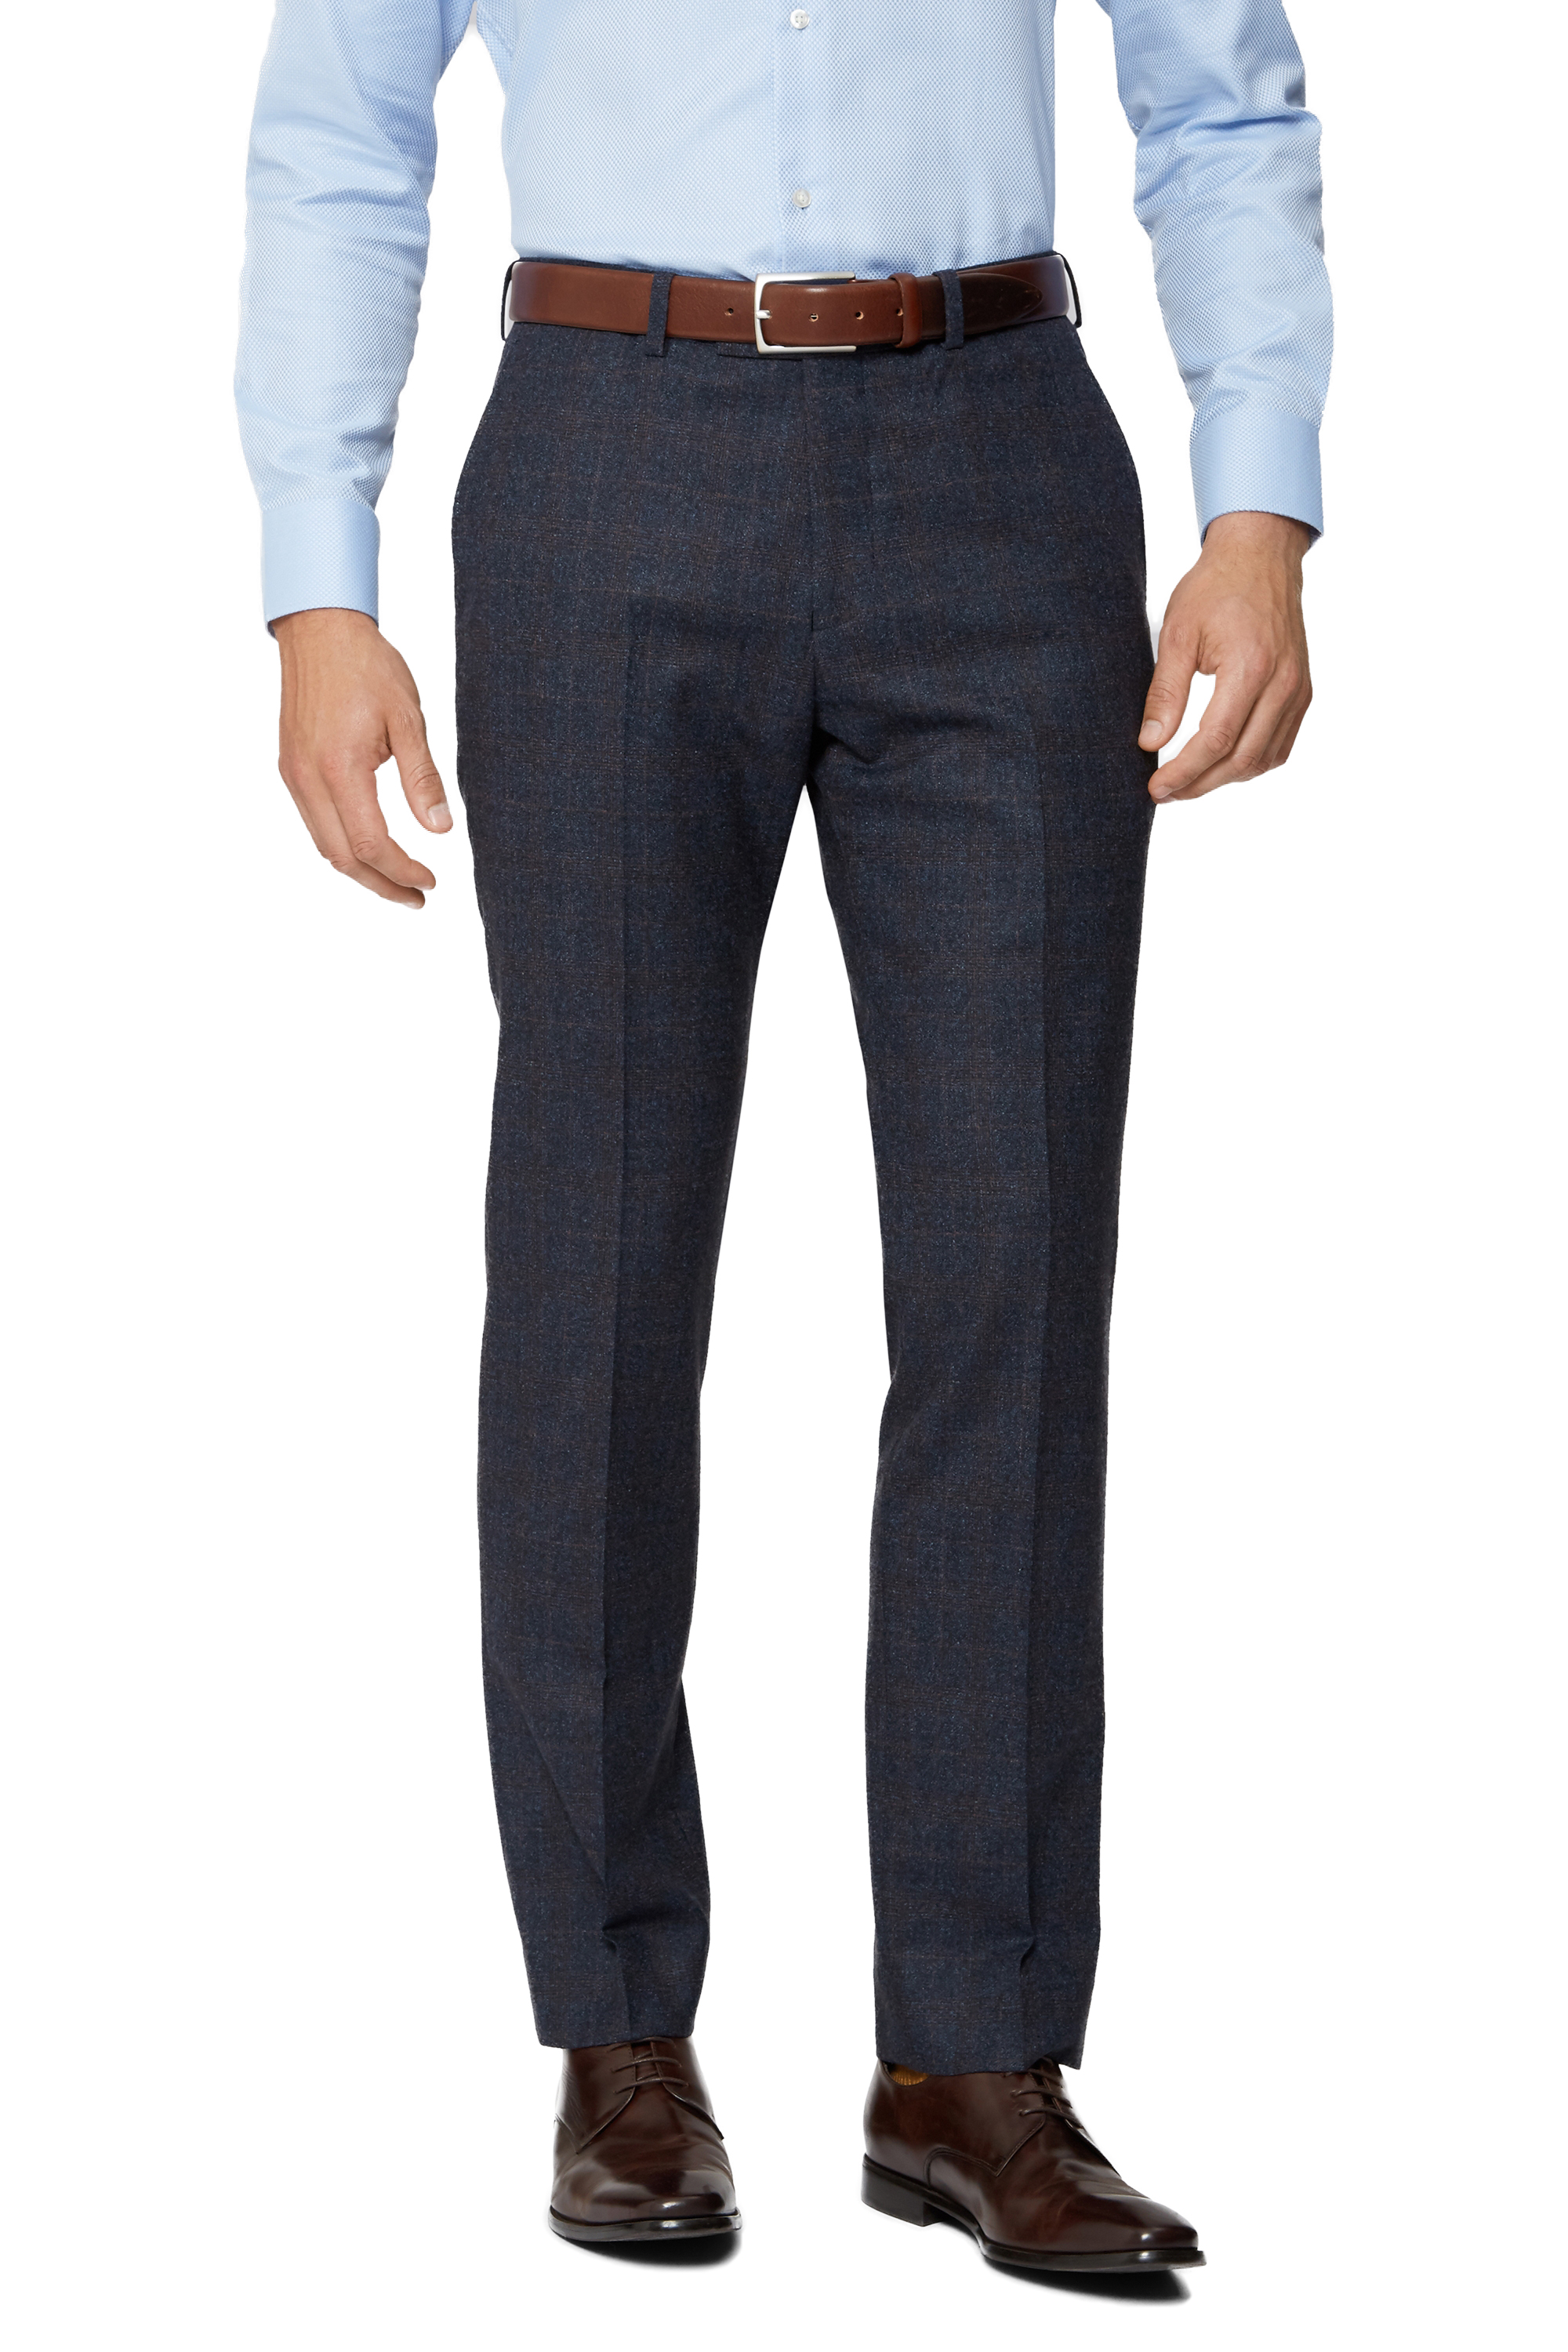 Cerruti Mens Navy Blue Suit Trousers Tailored Fit With Rust Check Formal Pants   EBay